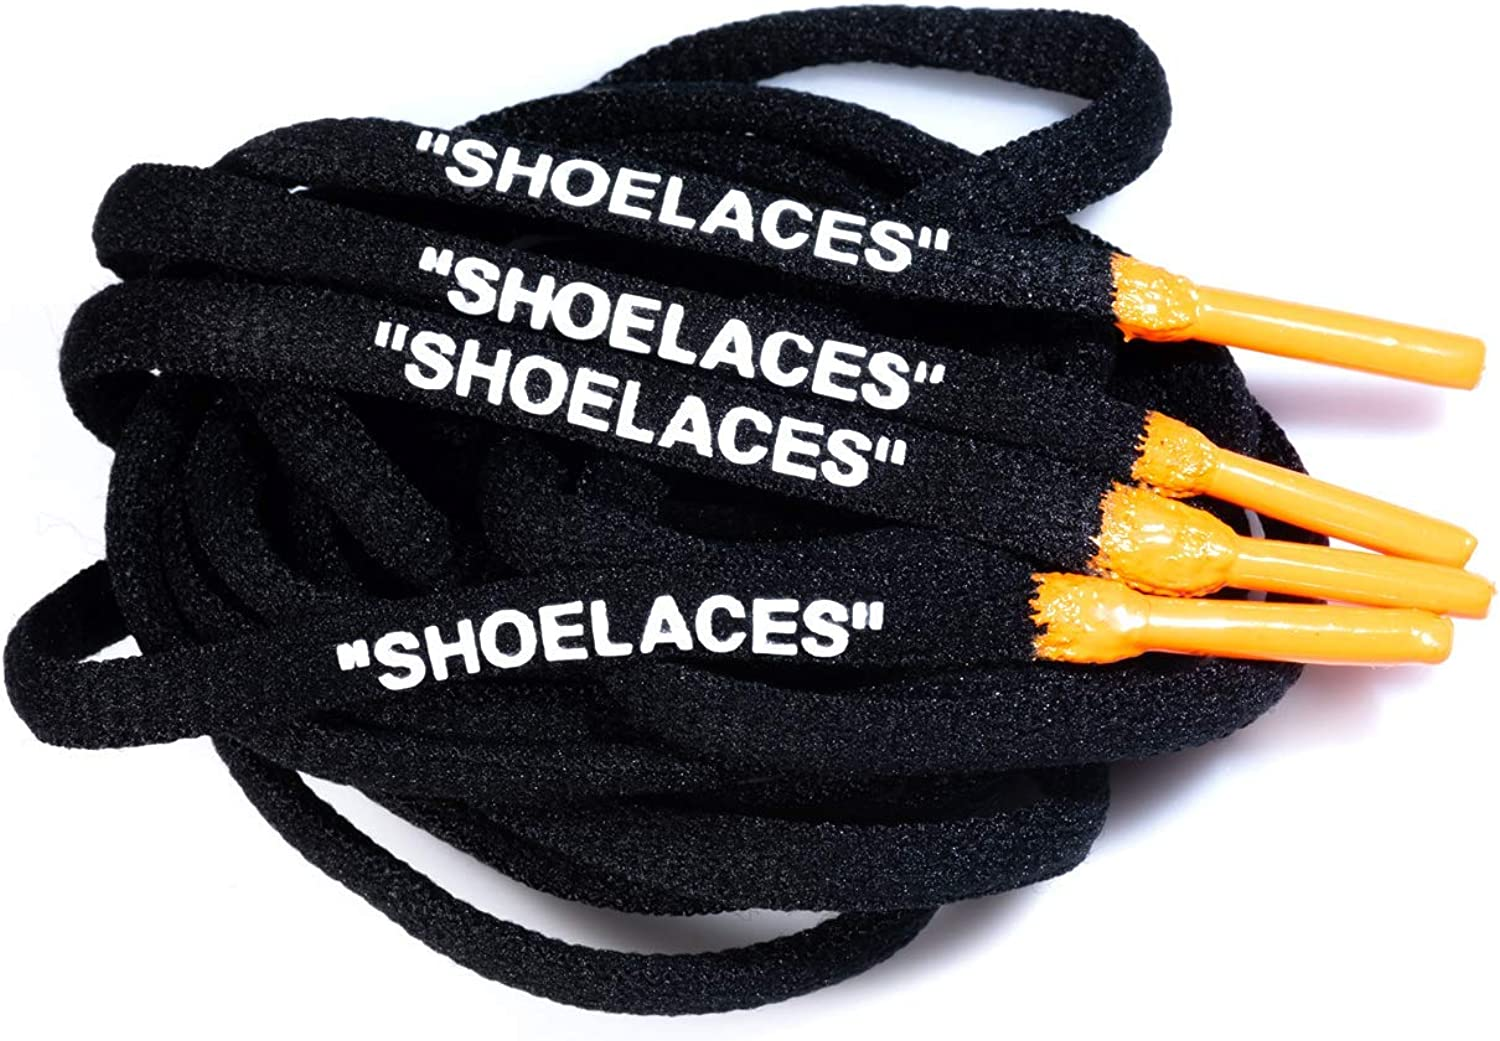 Oval Polyester Printed Shoe Laces with